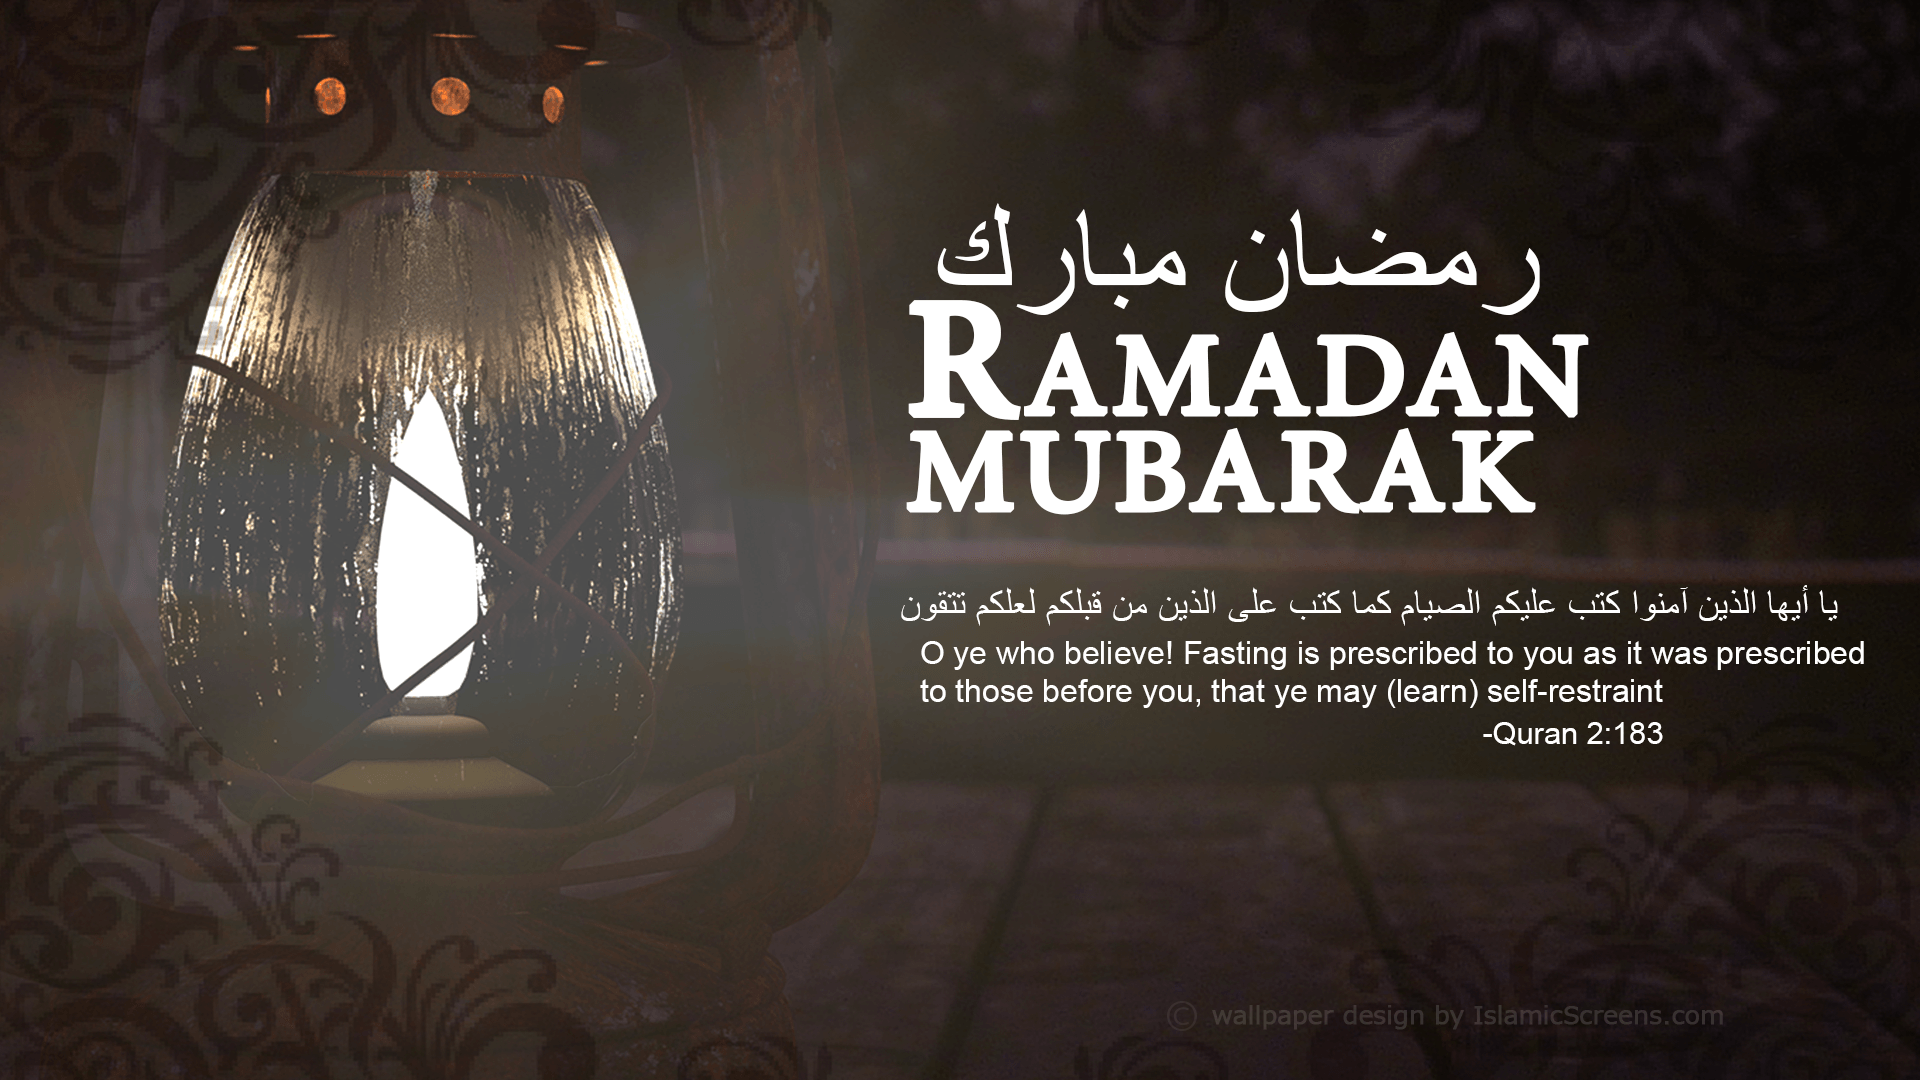 Ramadan Mubarak In Arabic Wallpapers 2016 - Wallpaper cave